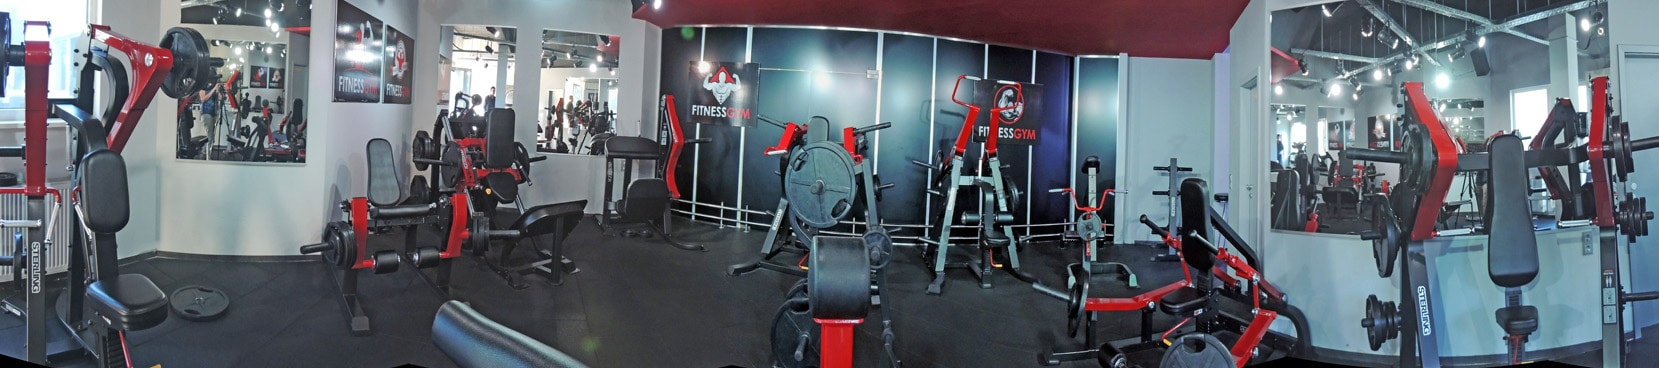 Fitnesspark Limburg Fitness Gym